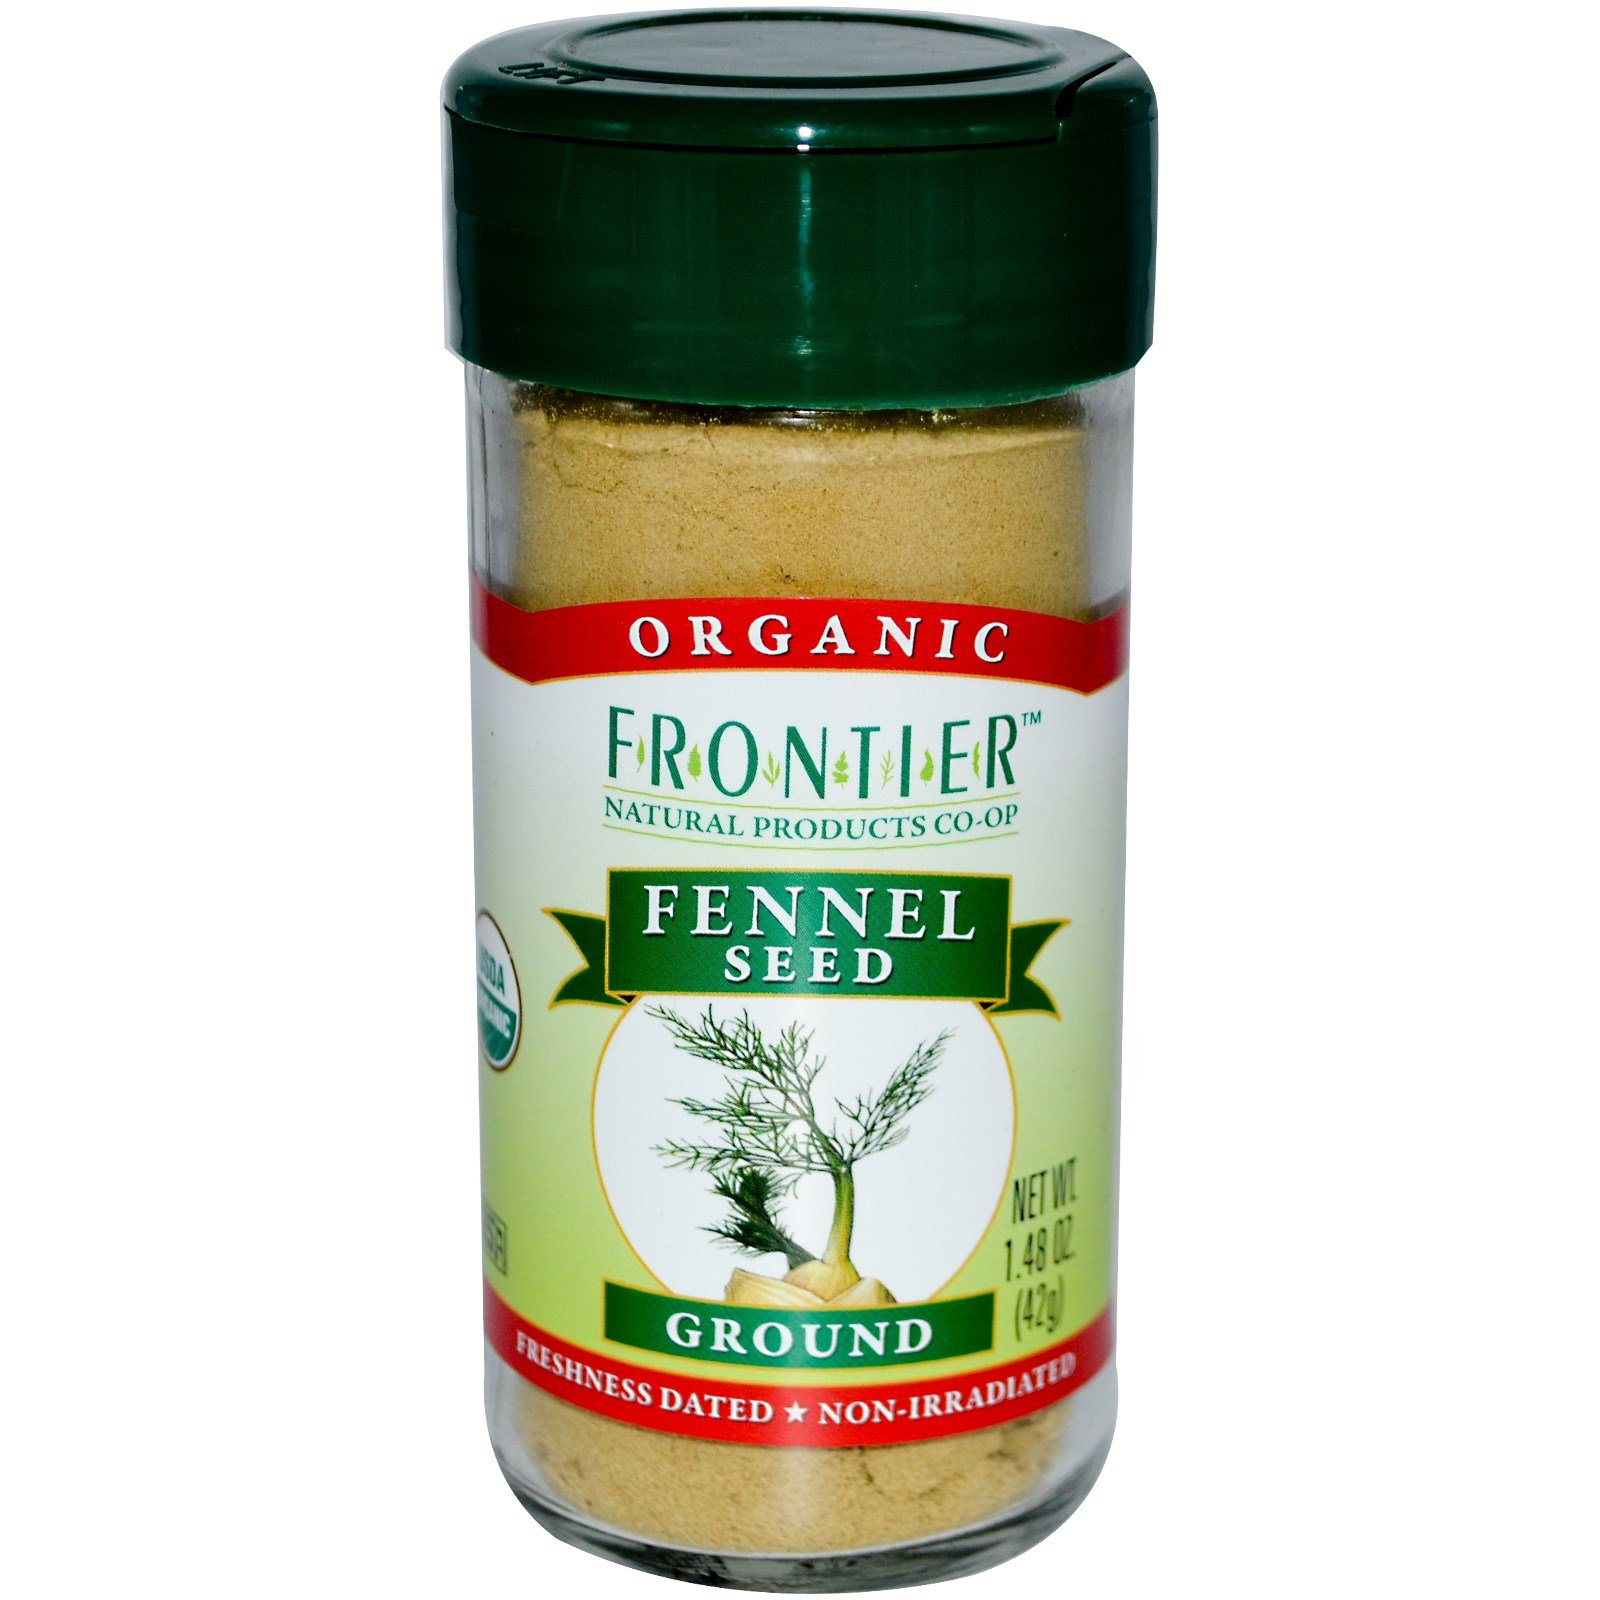 Frontier Natural Products, Organic Fennel Seed, Ground, 1.48 oz (42 g) - 2pcs